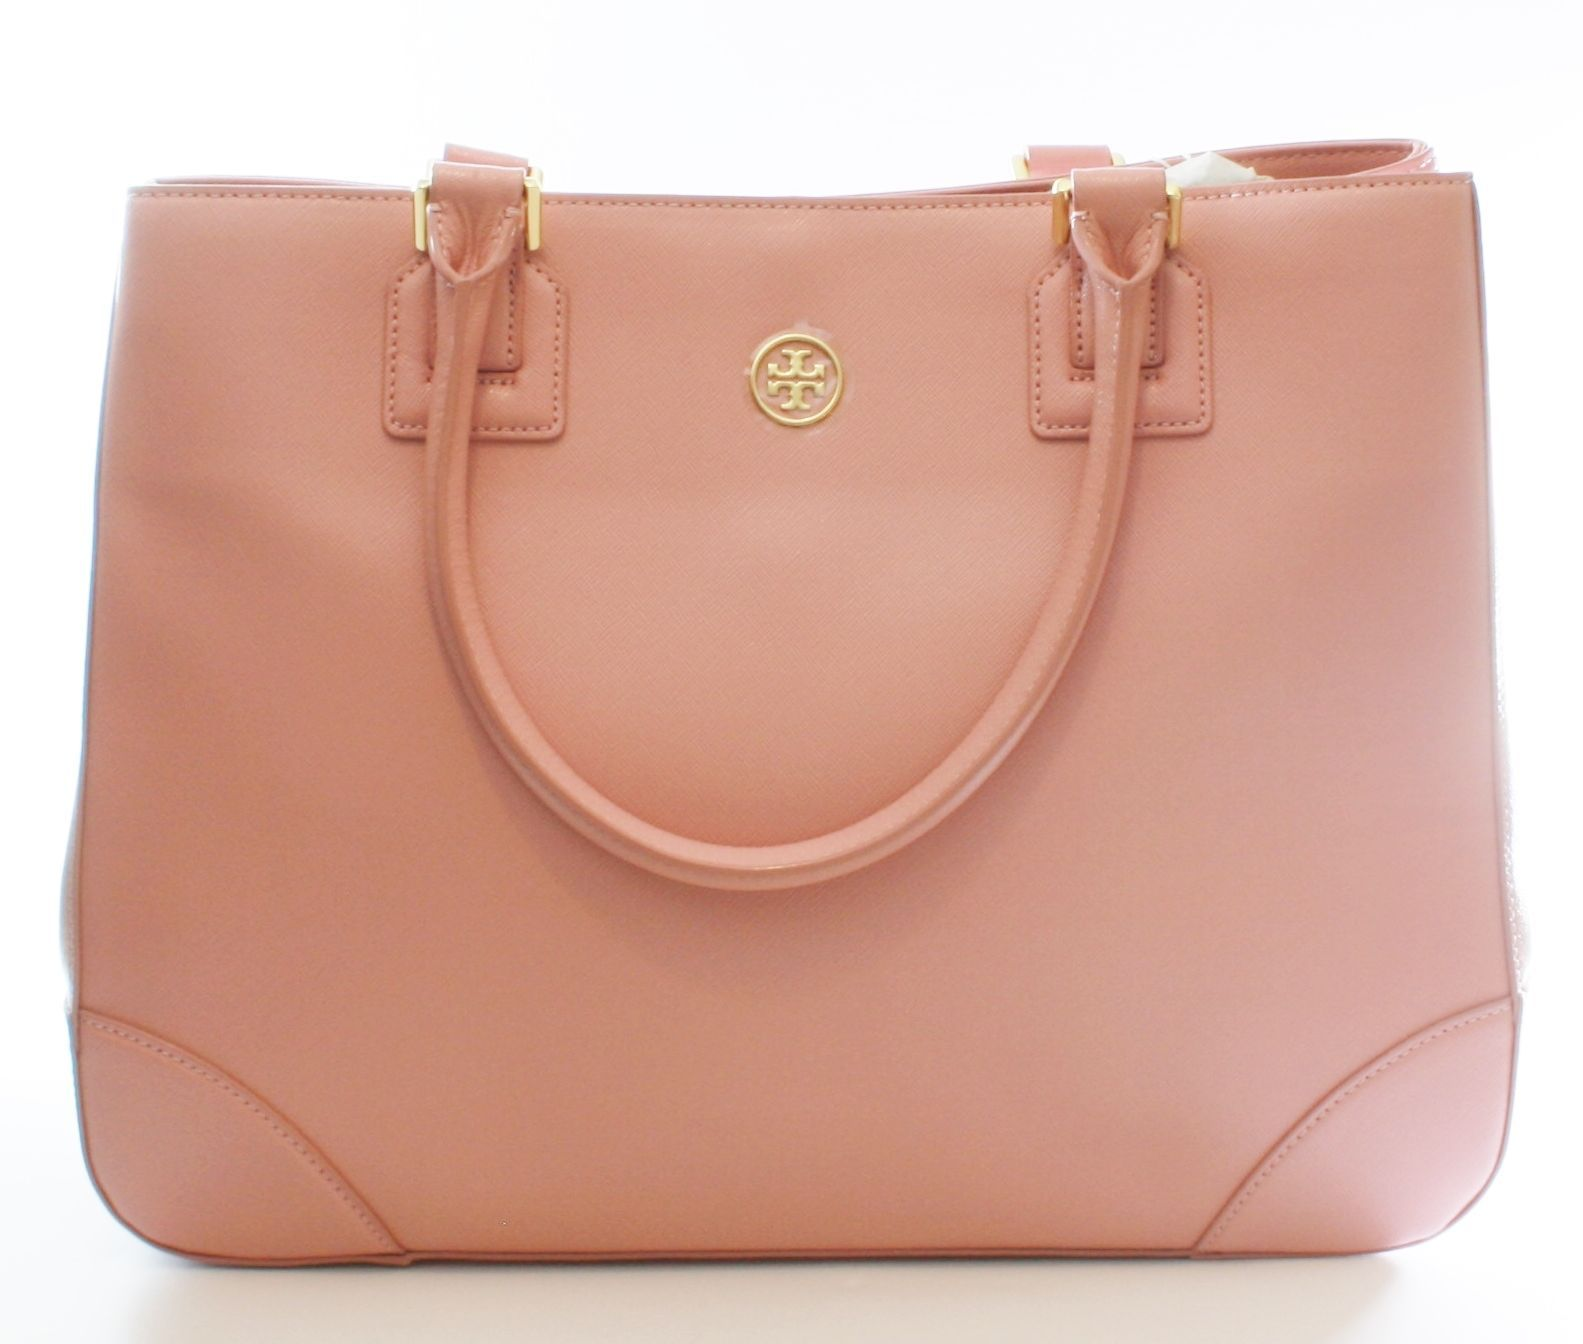 Primary image for Tory Burch Robinson Tote Bag Rose Sachet Pale Pink Leather Large Handbag